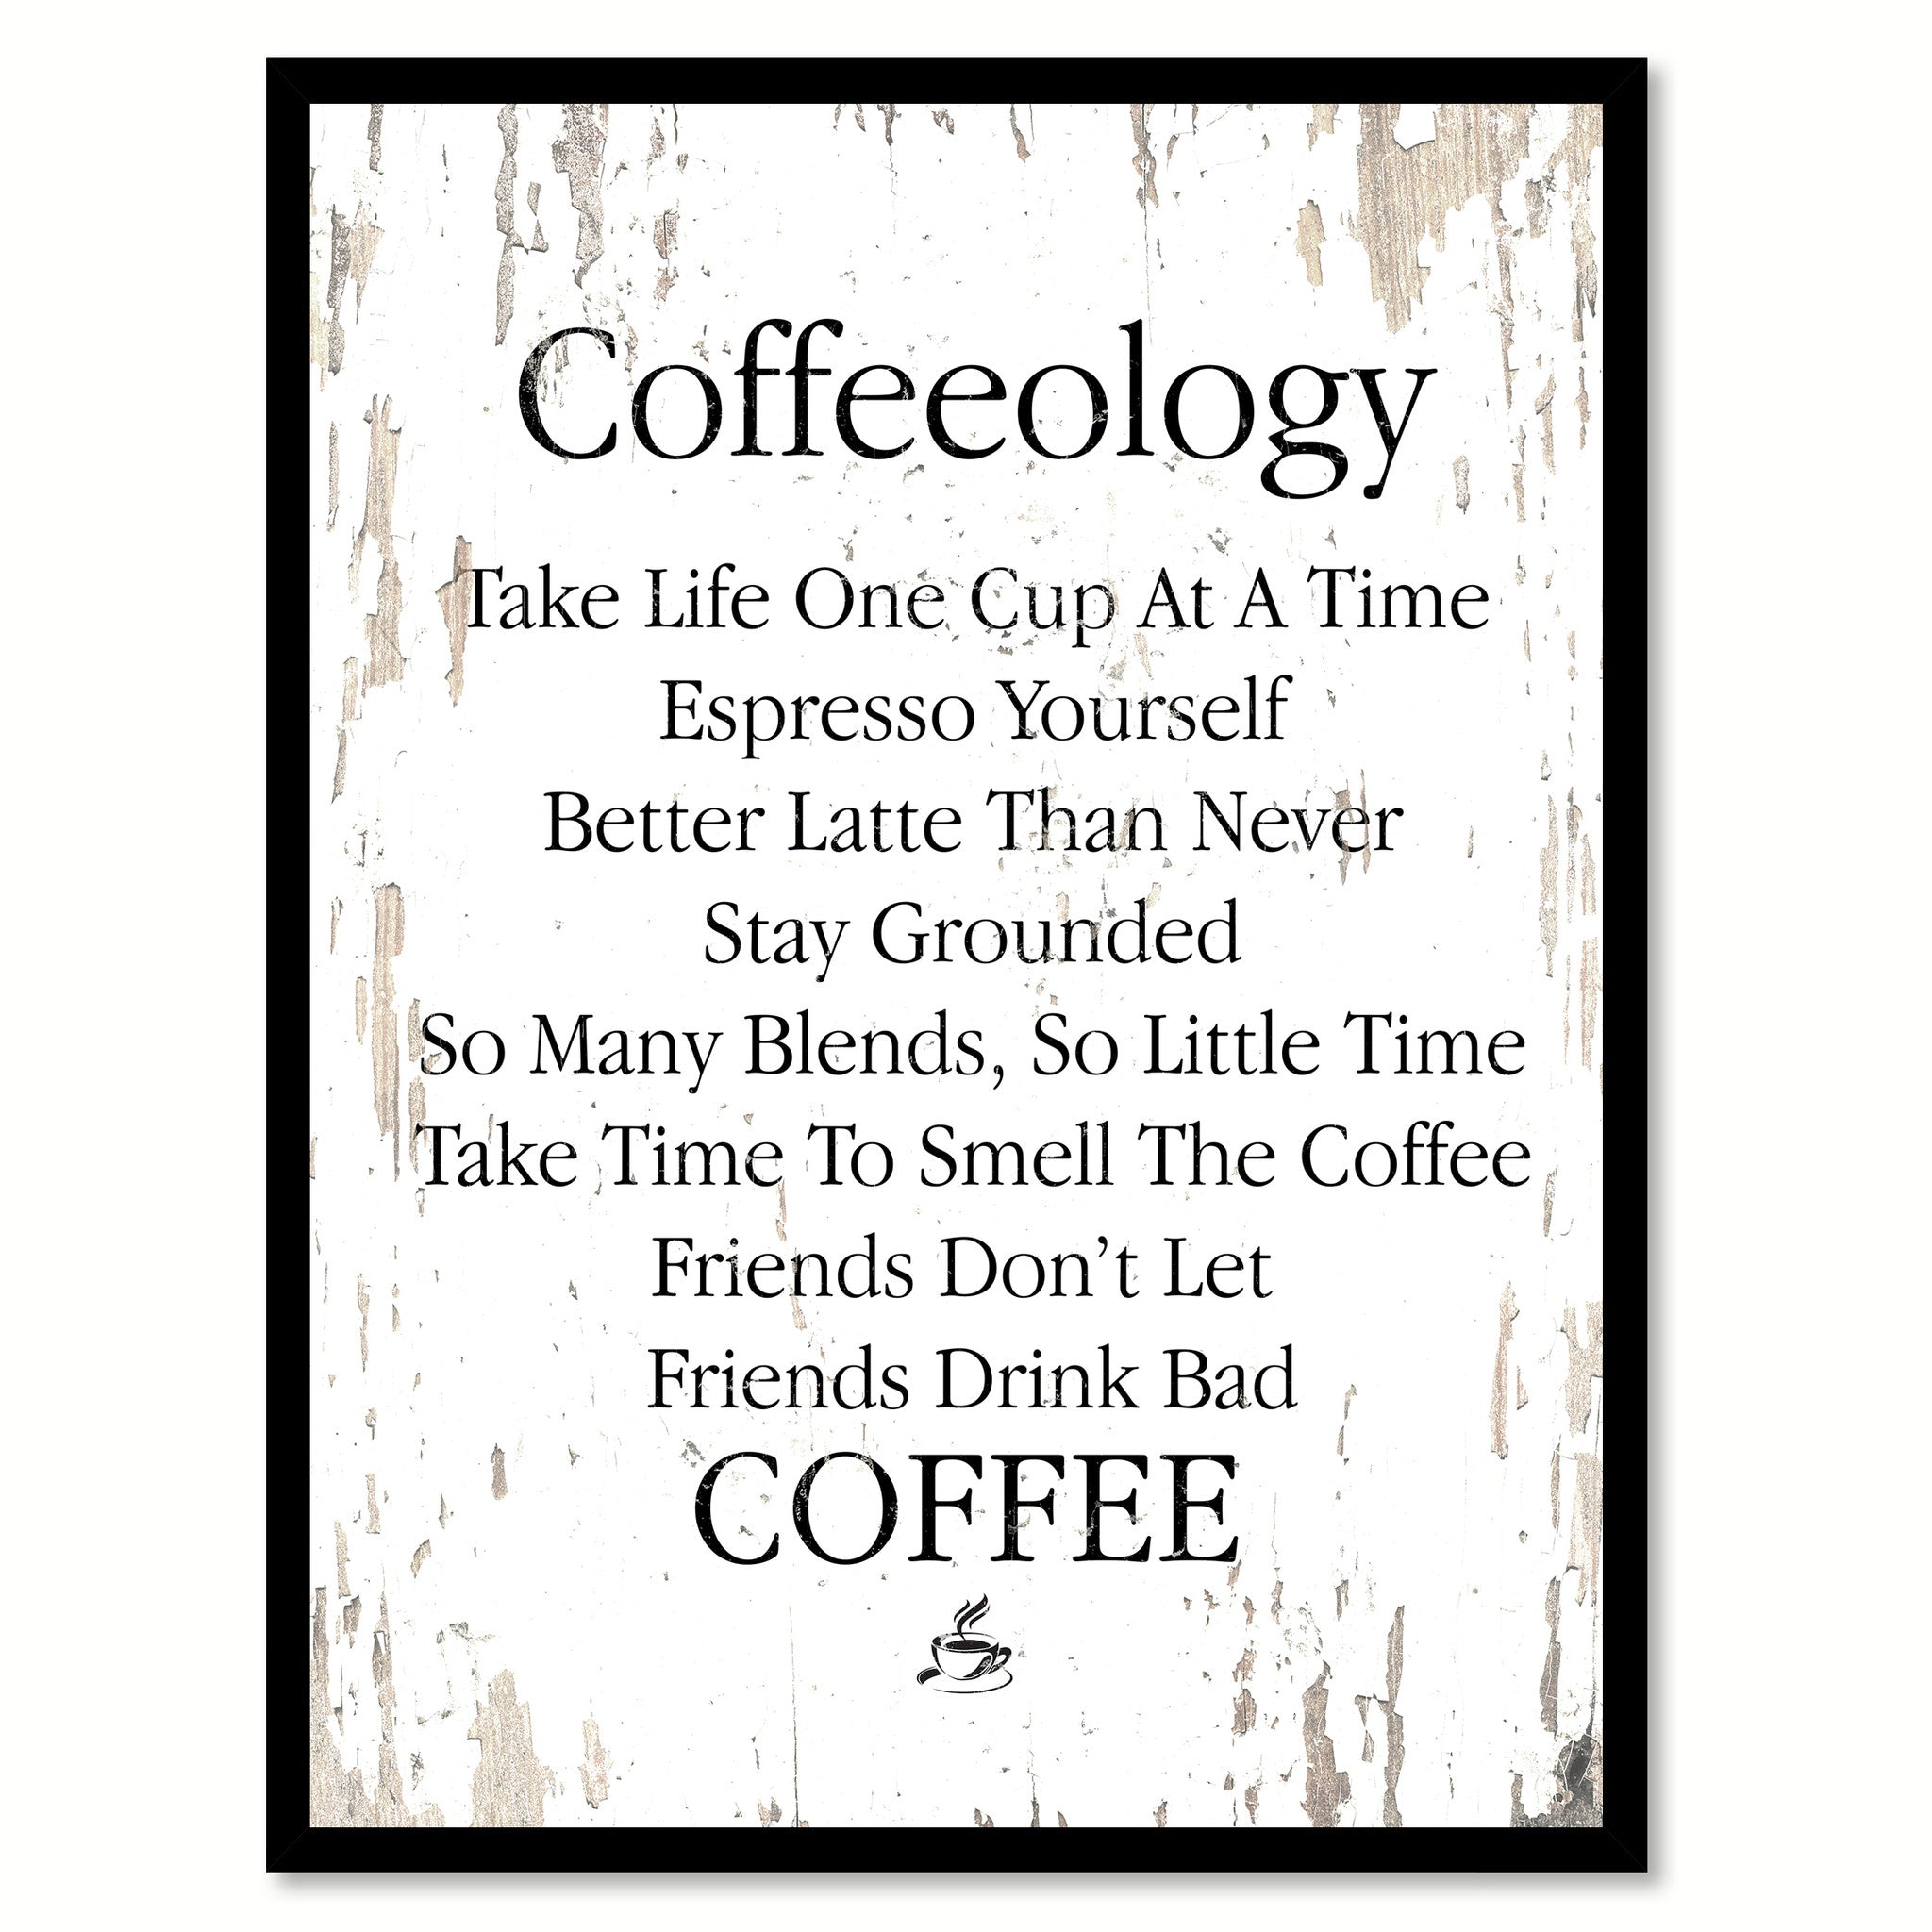 Quotes About Coffee And Friendship Coffeeology Espresso Yourself So Many Blends Take Life One Sip At